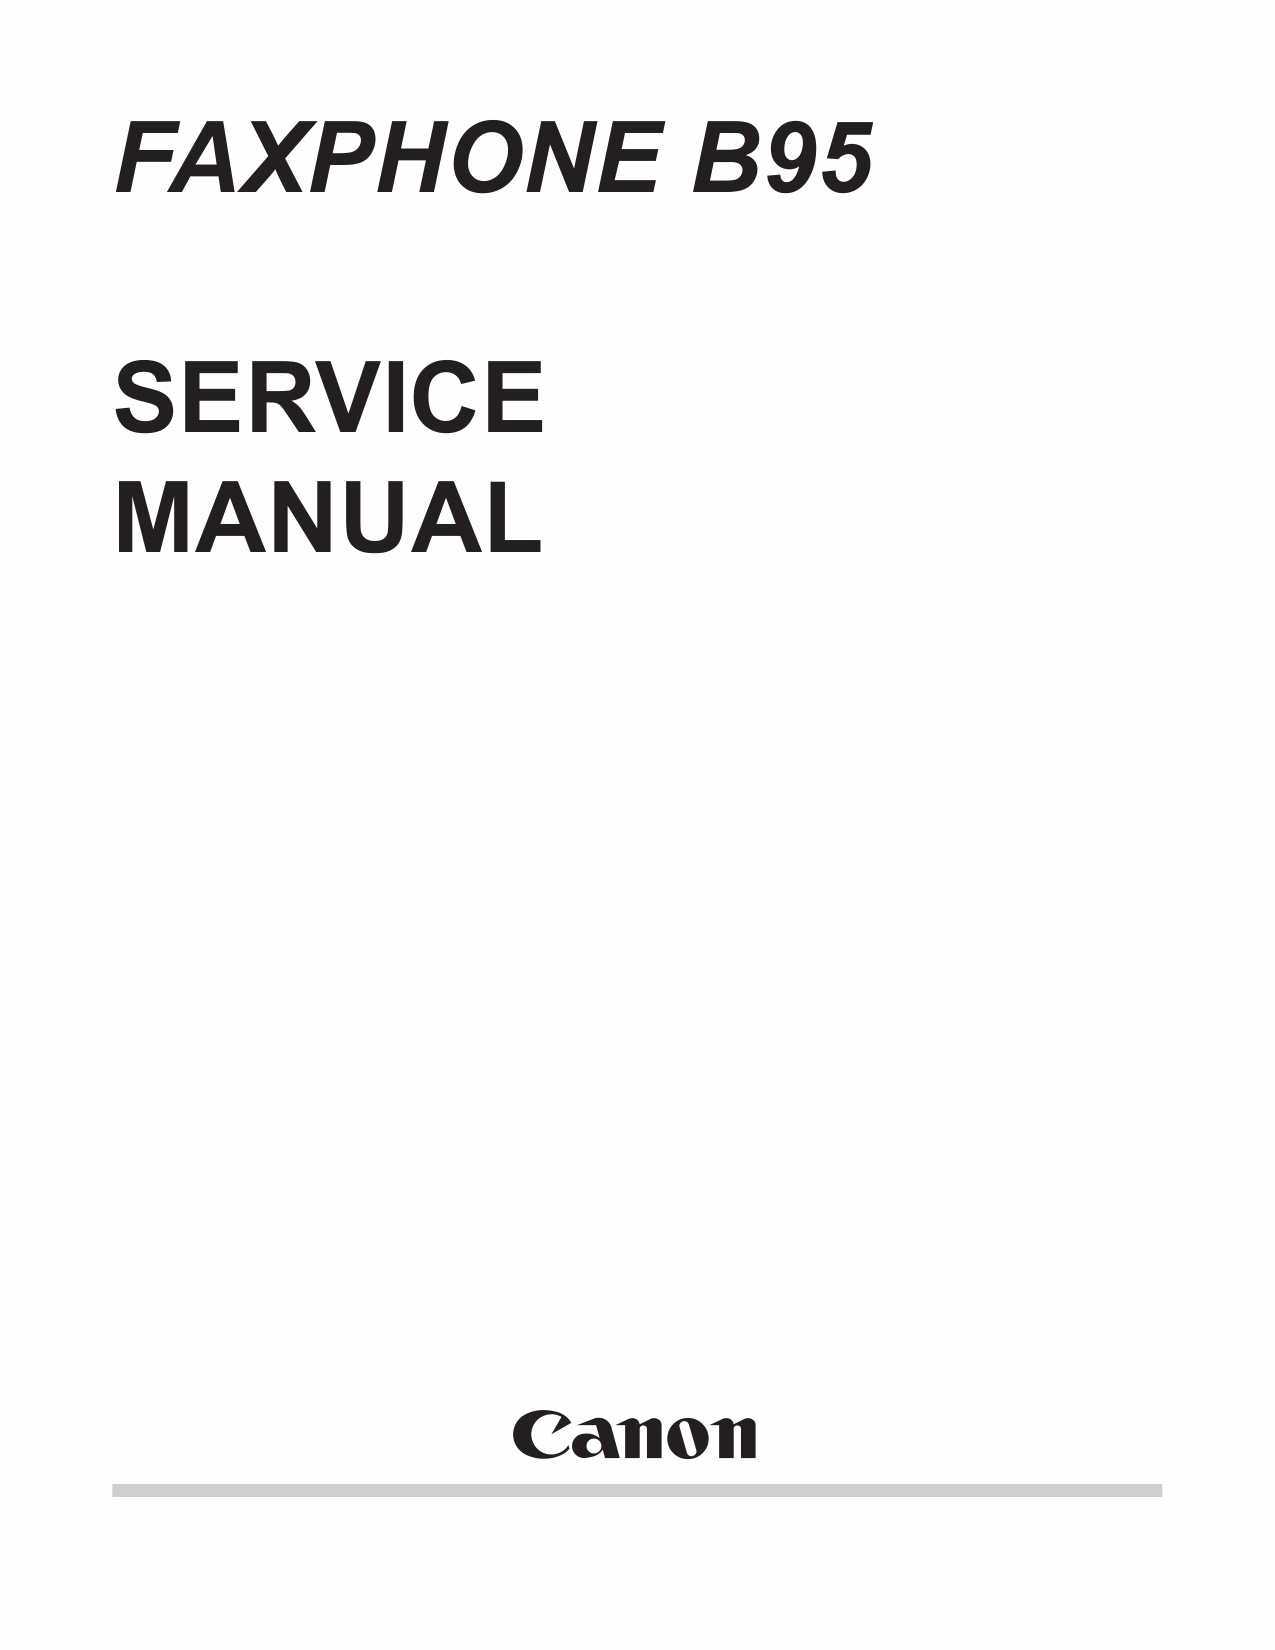 Canon FAX FP-B95 Parts and Service Manual-1